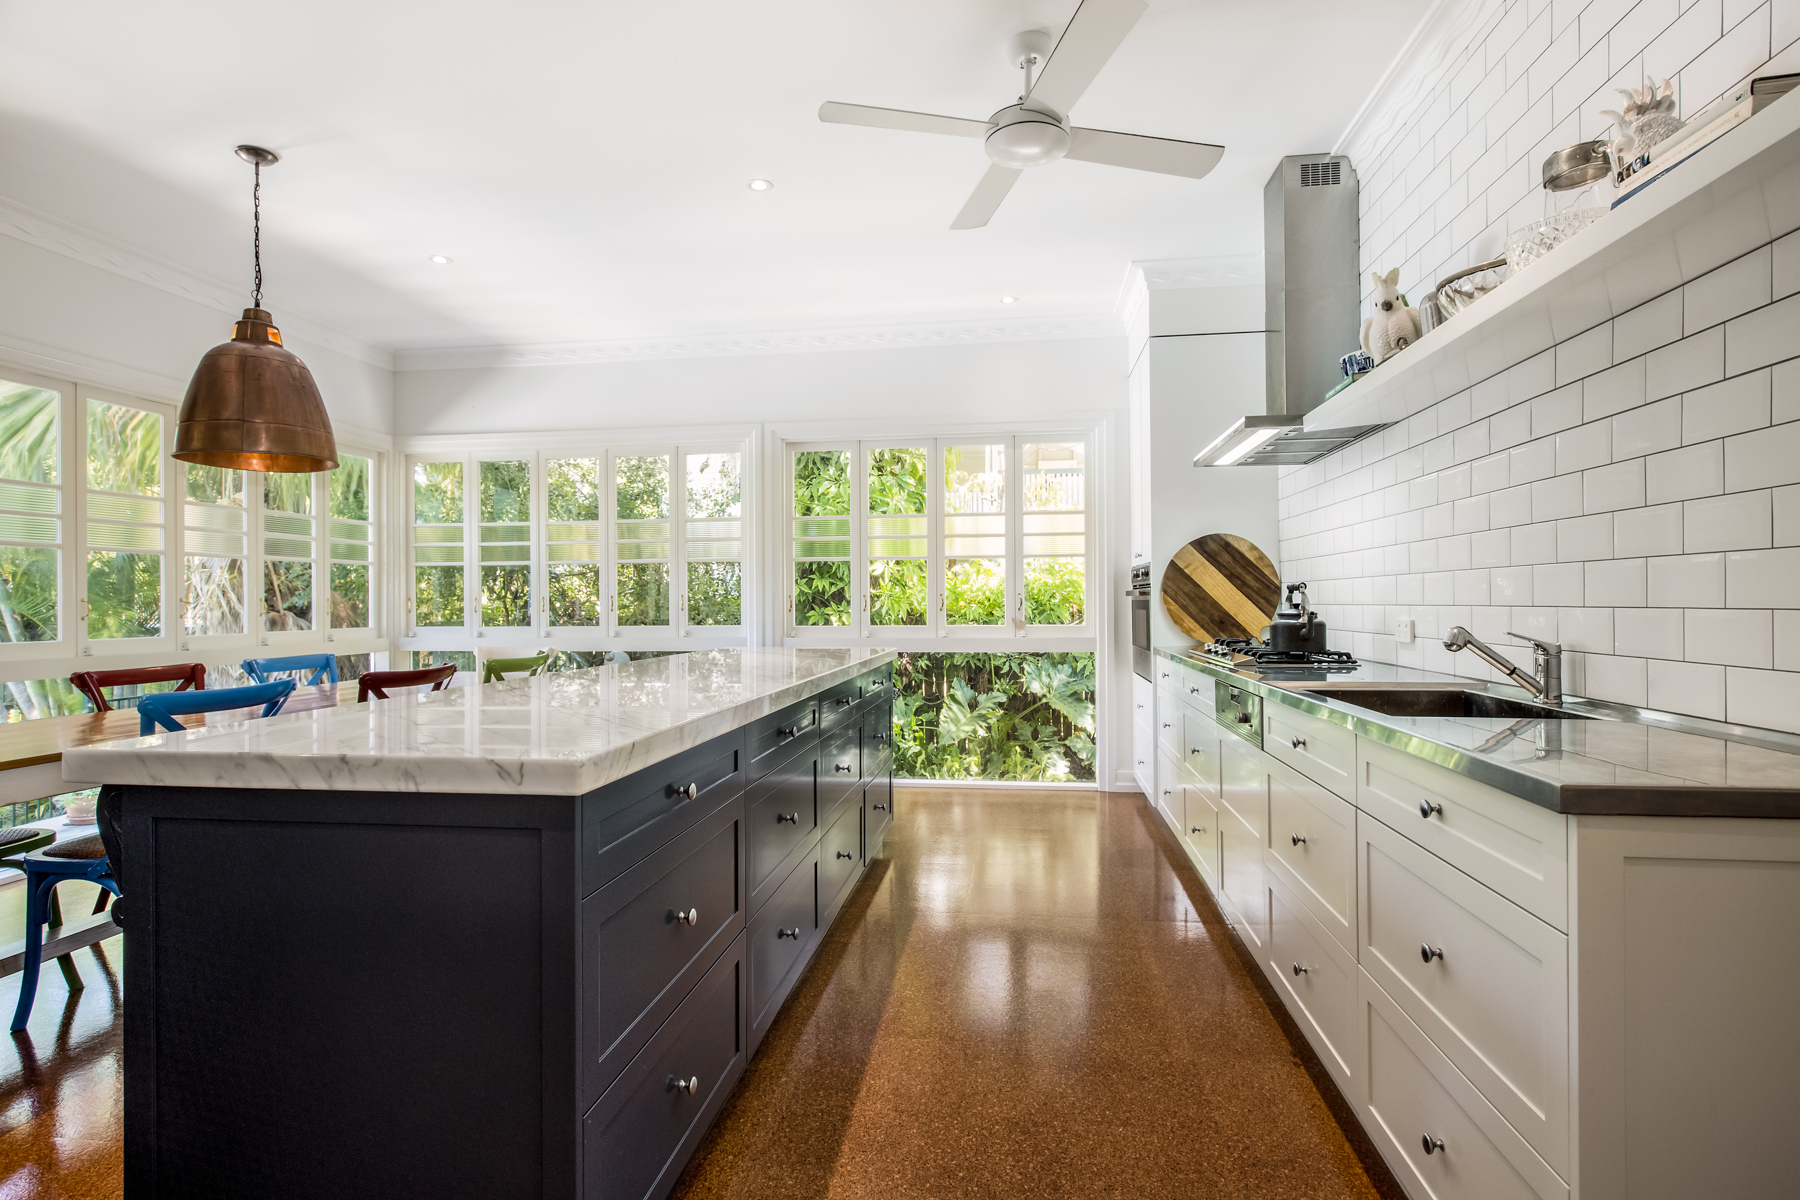 ... Country Kitchen Design Brisbane With Natural Marble U0026 Stainless Steel  Bench Top 2